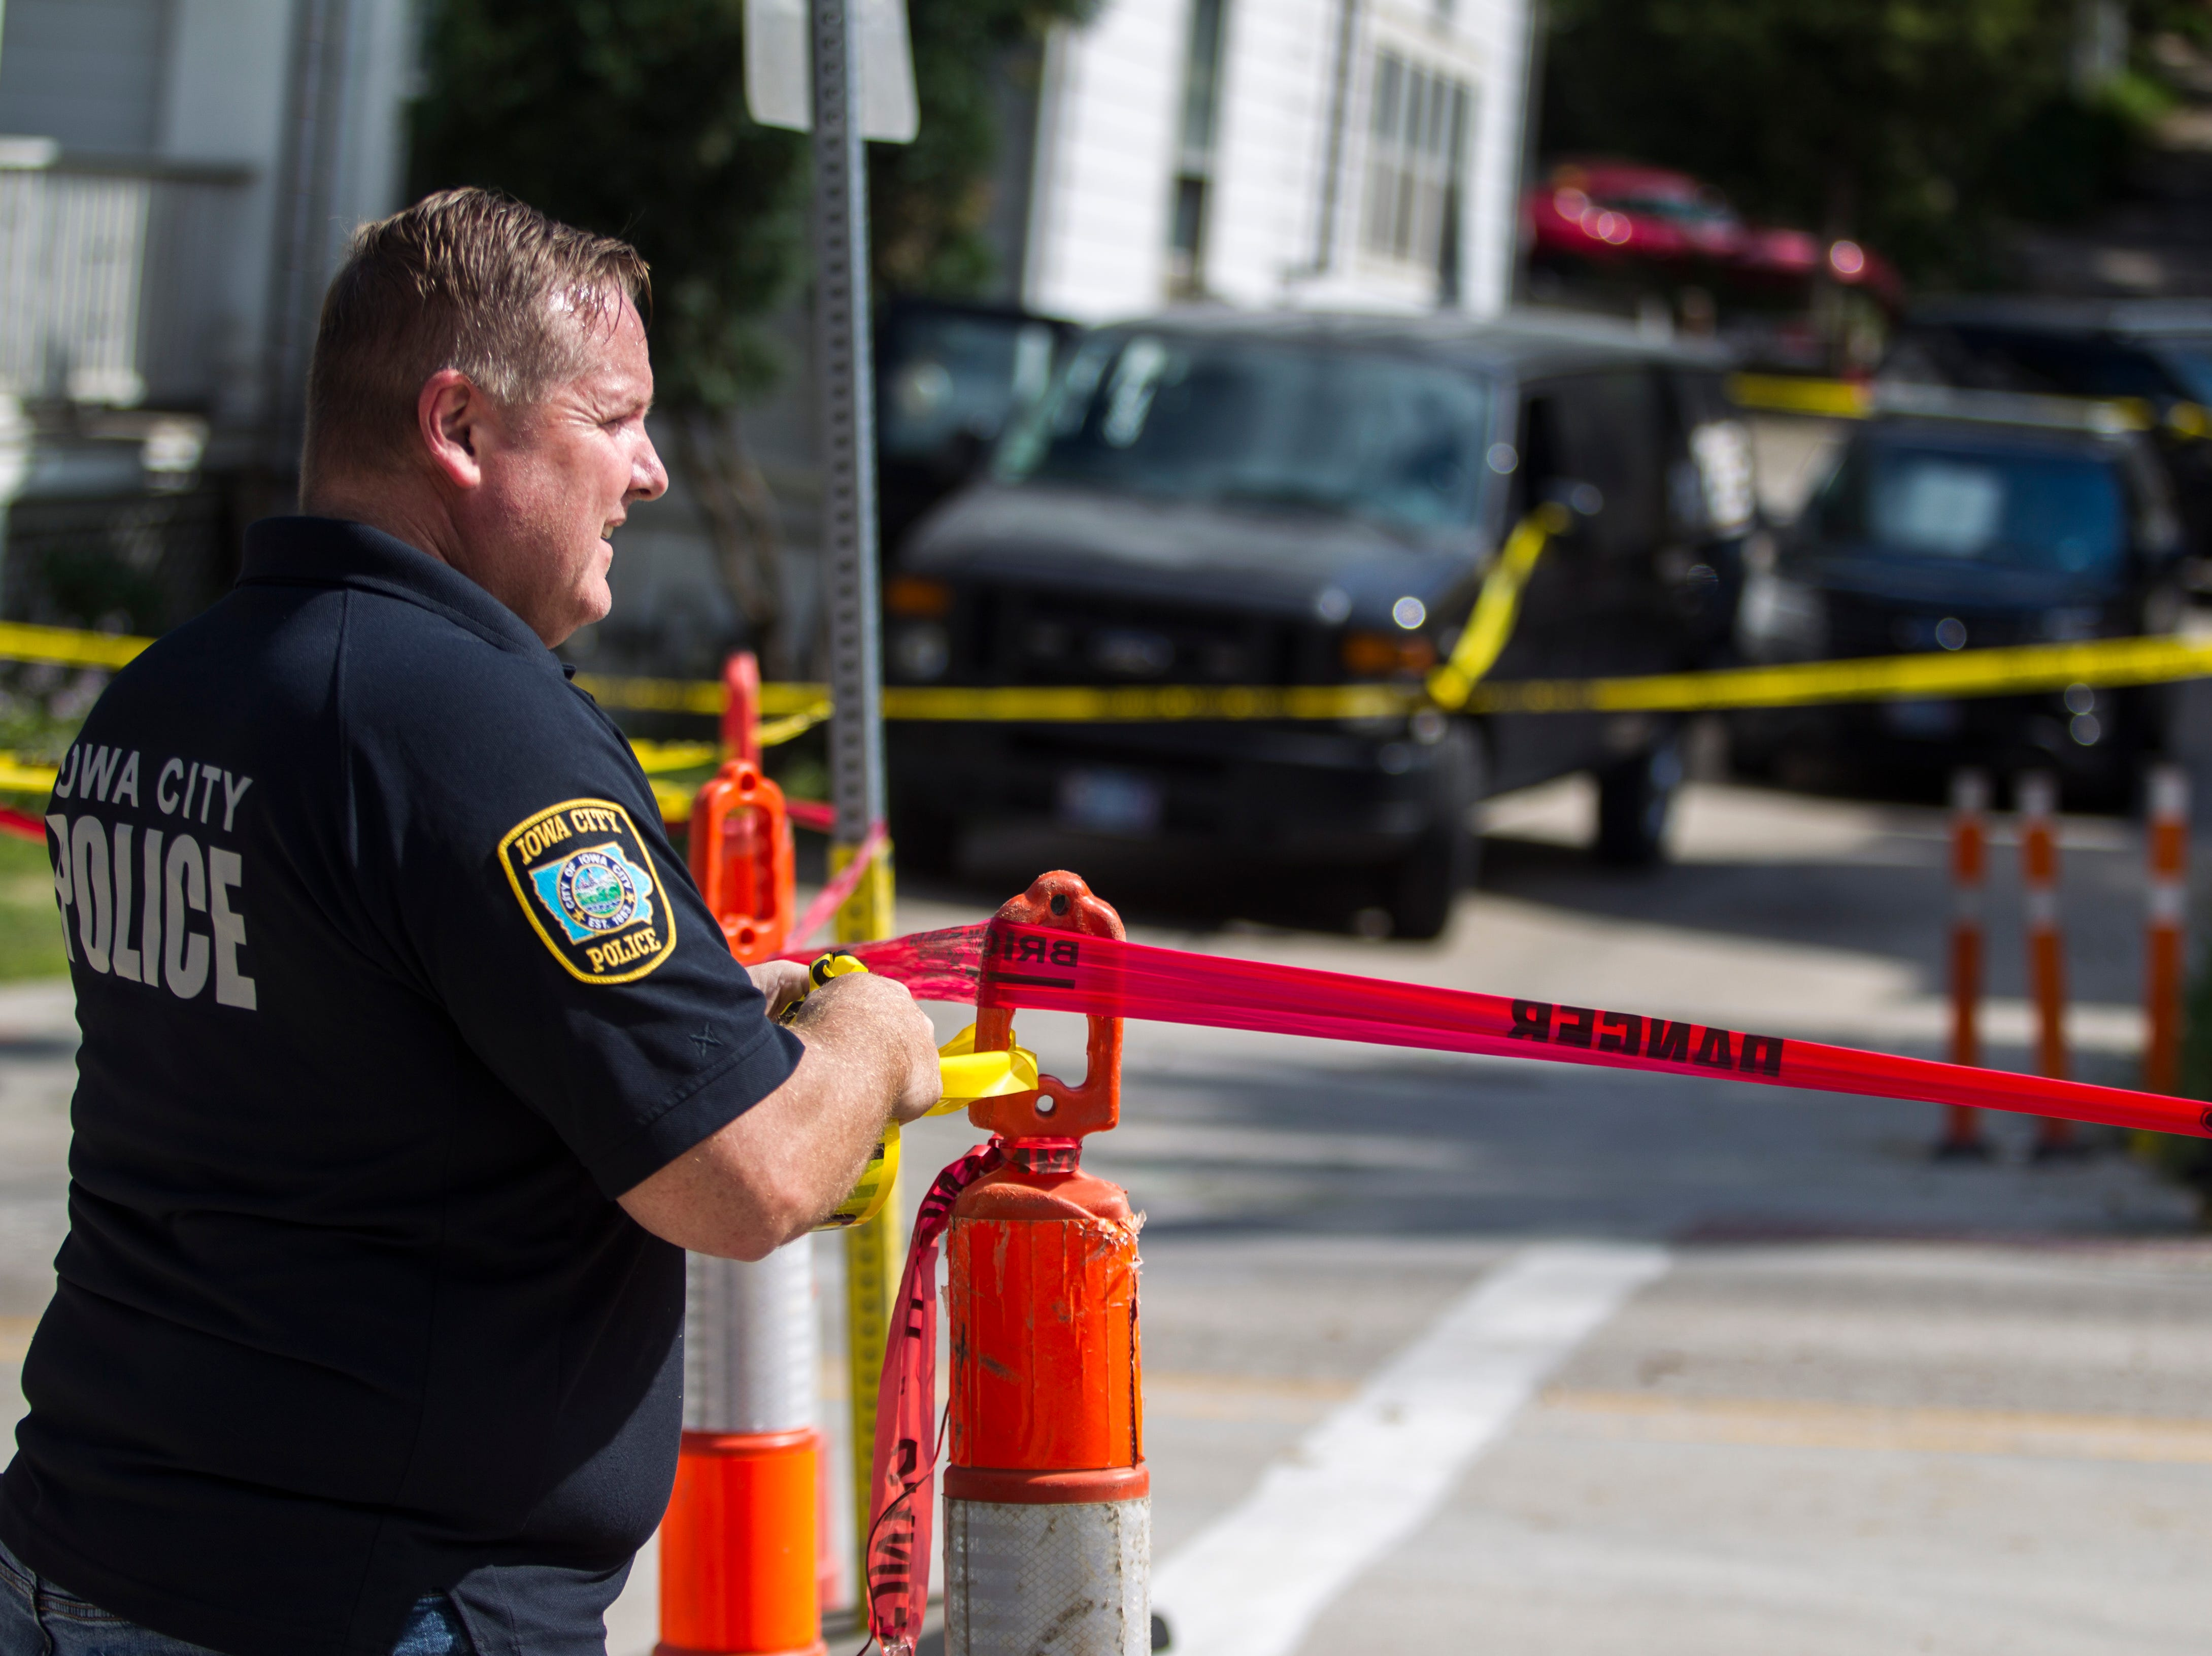 An Iowa City Police officer puts up yellow caution crime scene tape during an a motor vehicle collision investigation on Thursday, Sept. 13, 2018, along Dubuque Street between Brown and Church Streets.